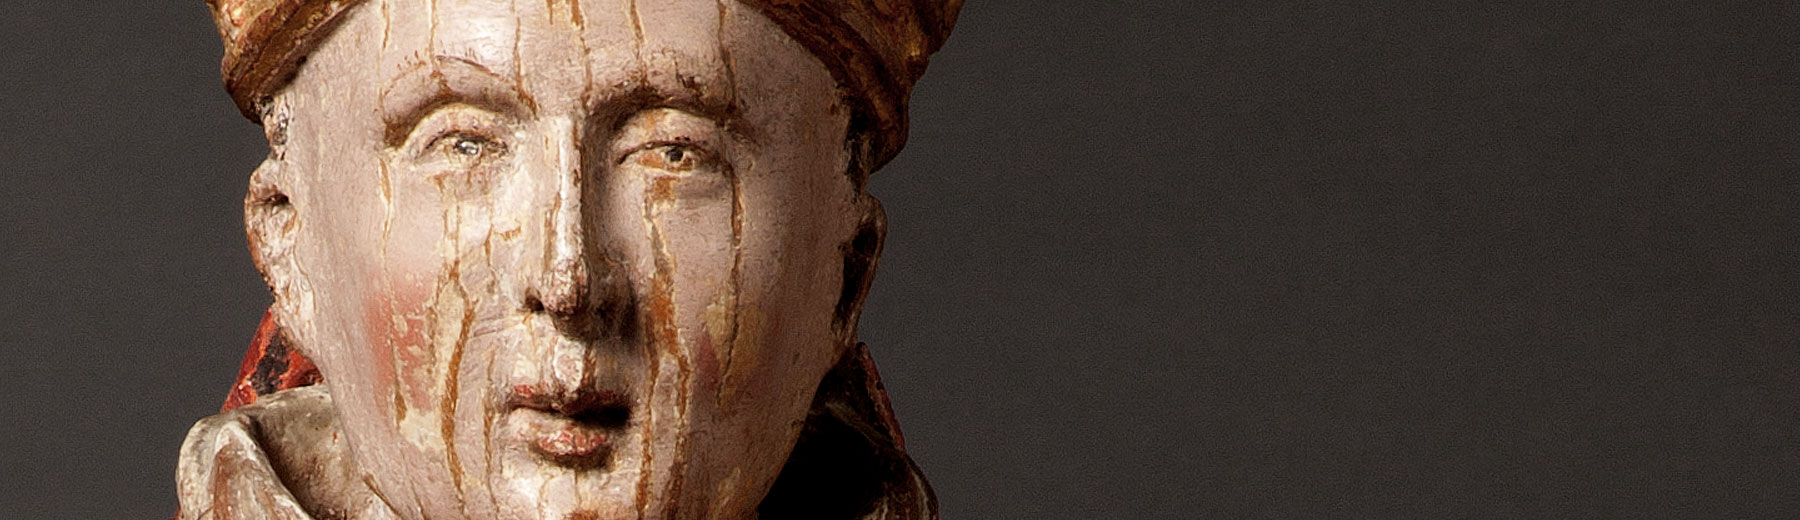 Holy Bishop, polychromed limewood, Brabant, 1st half of the 17th century(copyright: M - Museum Leuven | photography: Paul Laes)